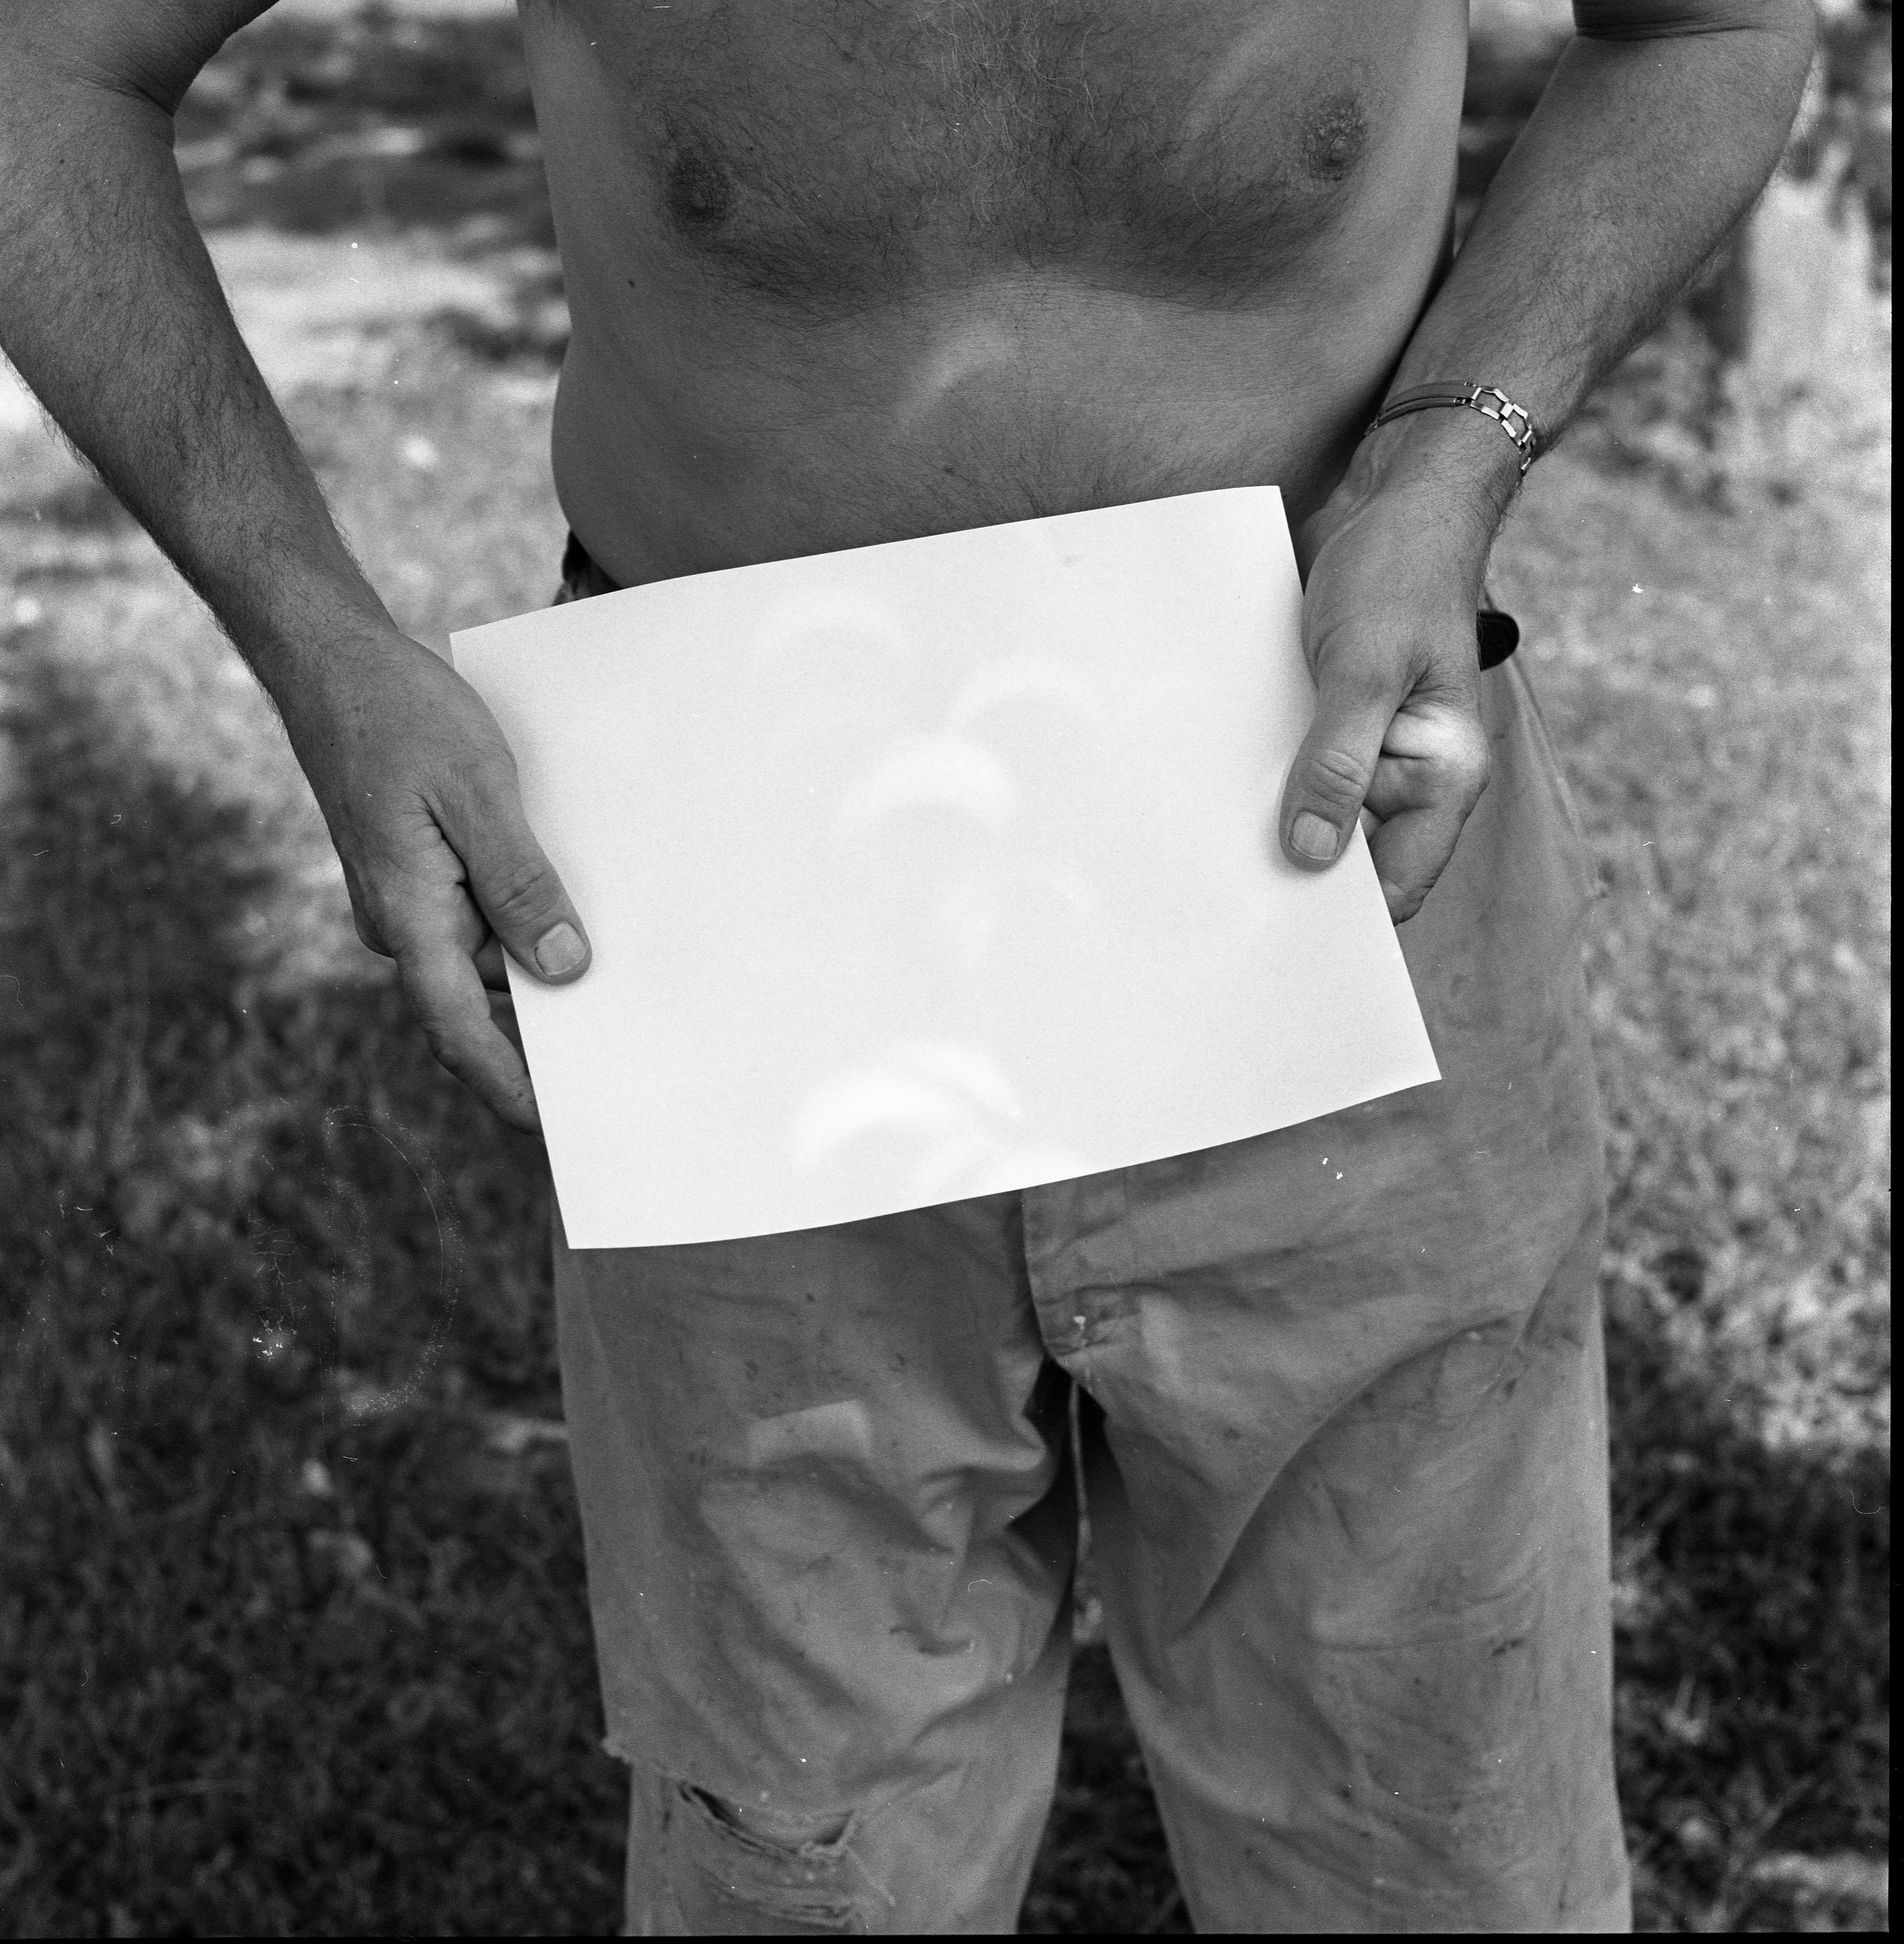 Anthony Haven Shows How He Uses Paper To Observe Solar Eclipse, July 22, 1963 image